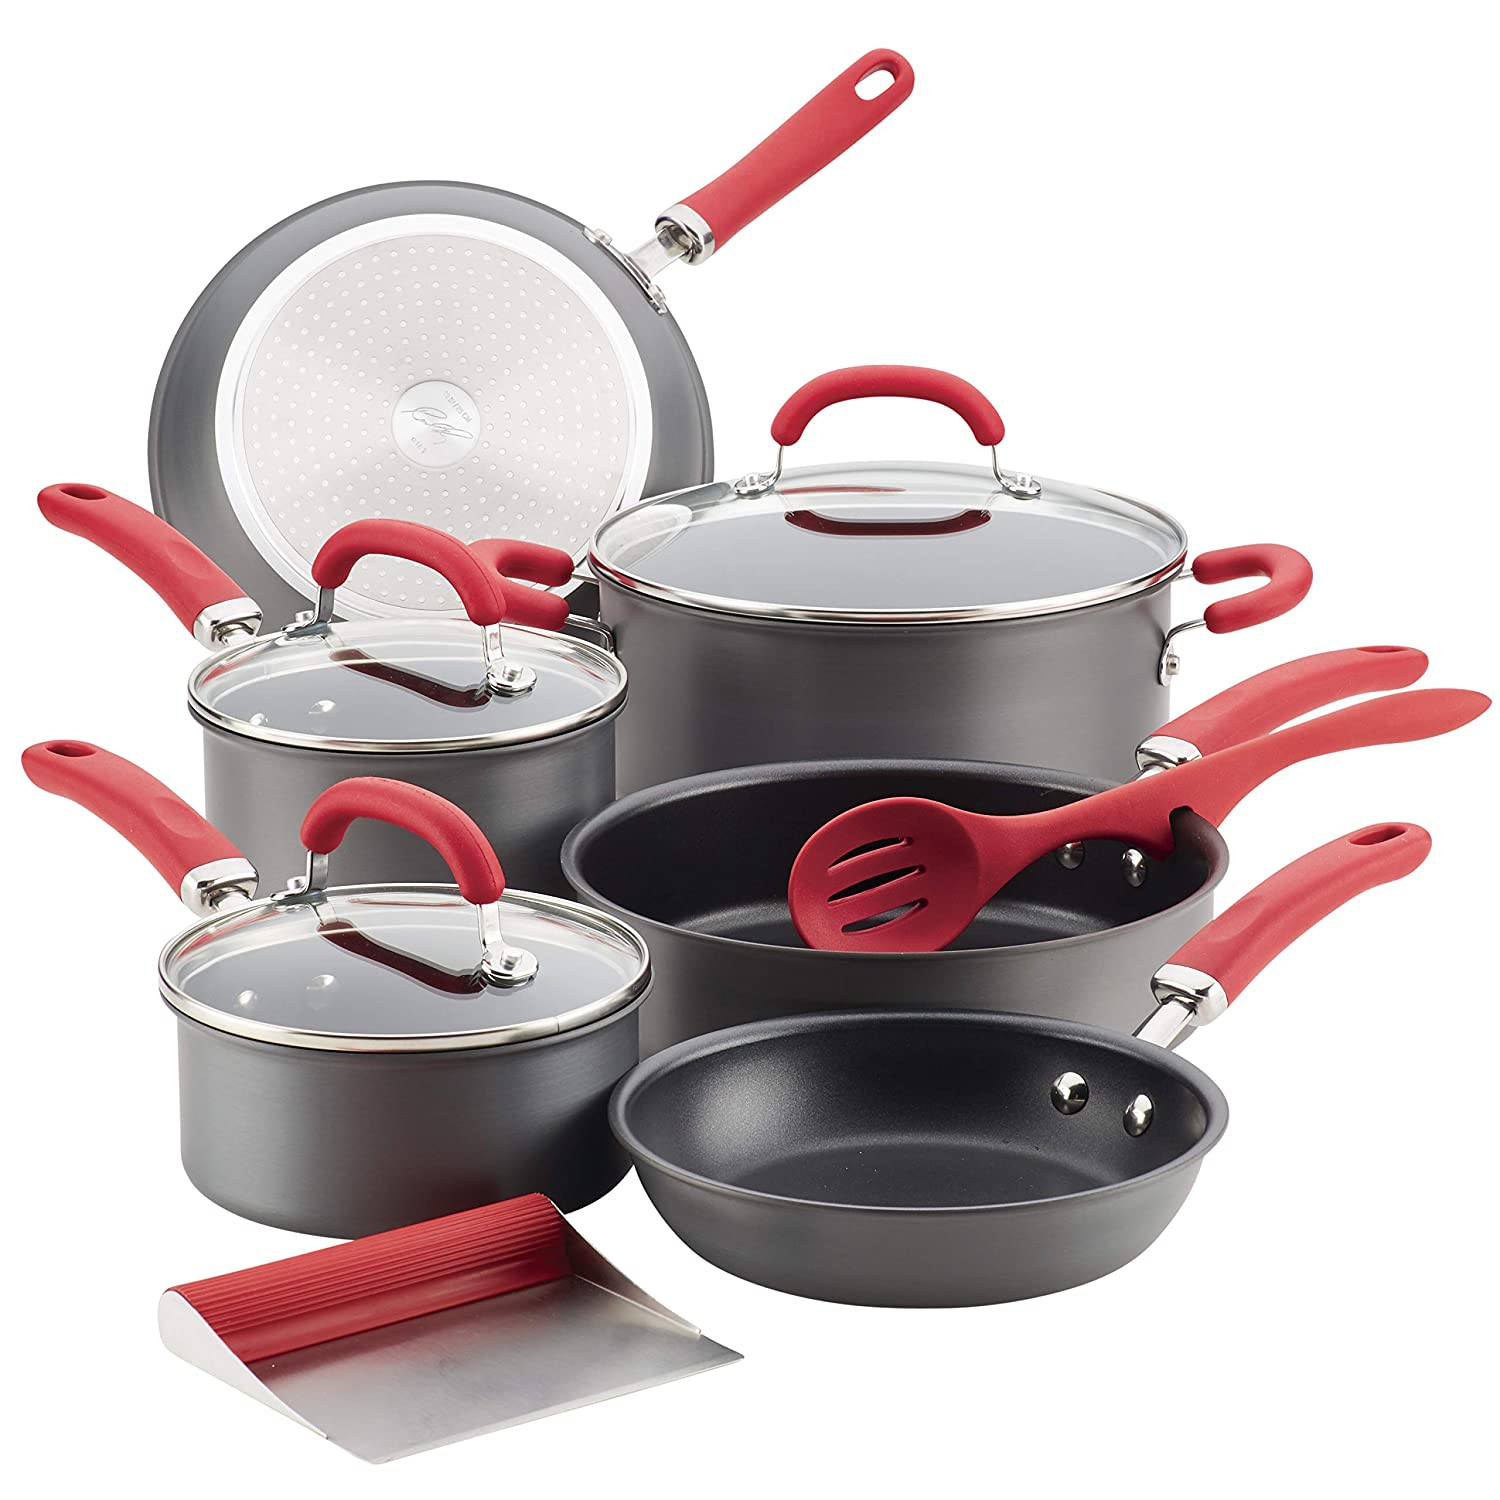 Rachael Ray 81157 11-Piece Hard Anodized Aluminum Cookware Set, Gray with Red Handles